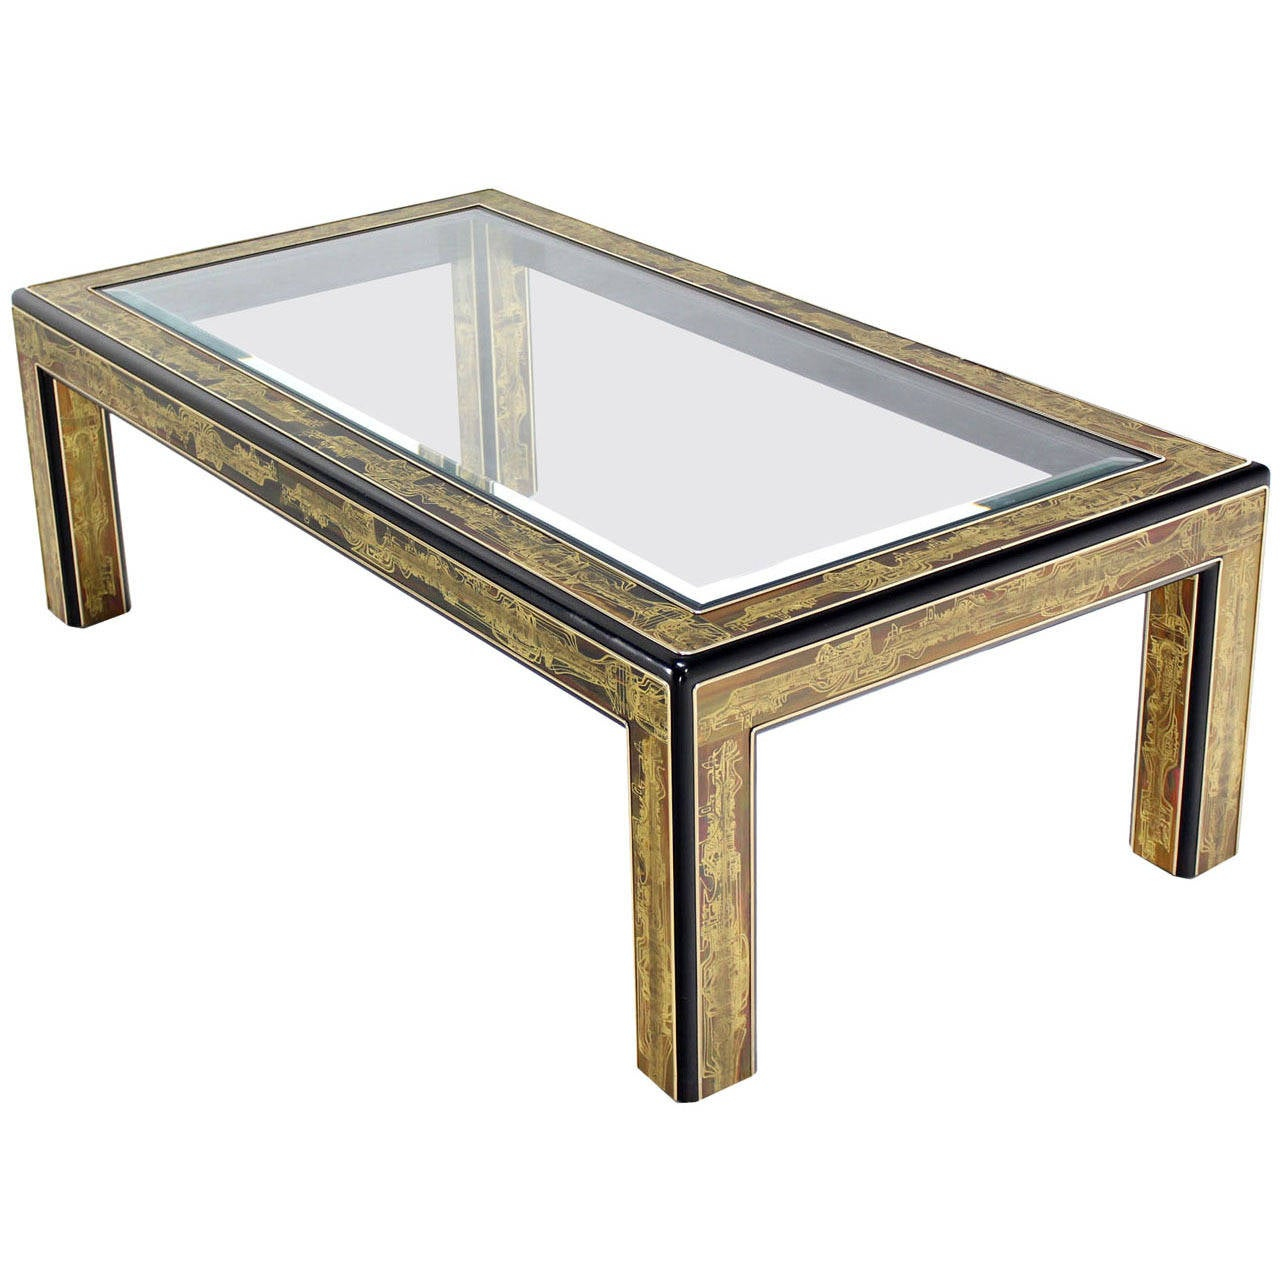 Rectangular glass top brass and wood base coffee table by mastercraft at 1stdibs Glass furniture tops